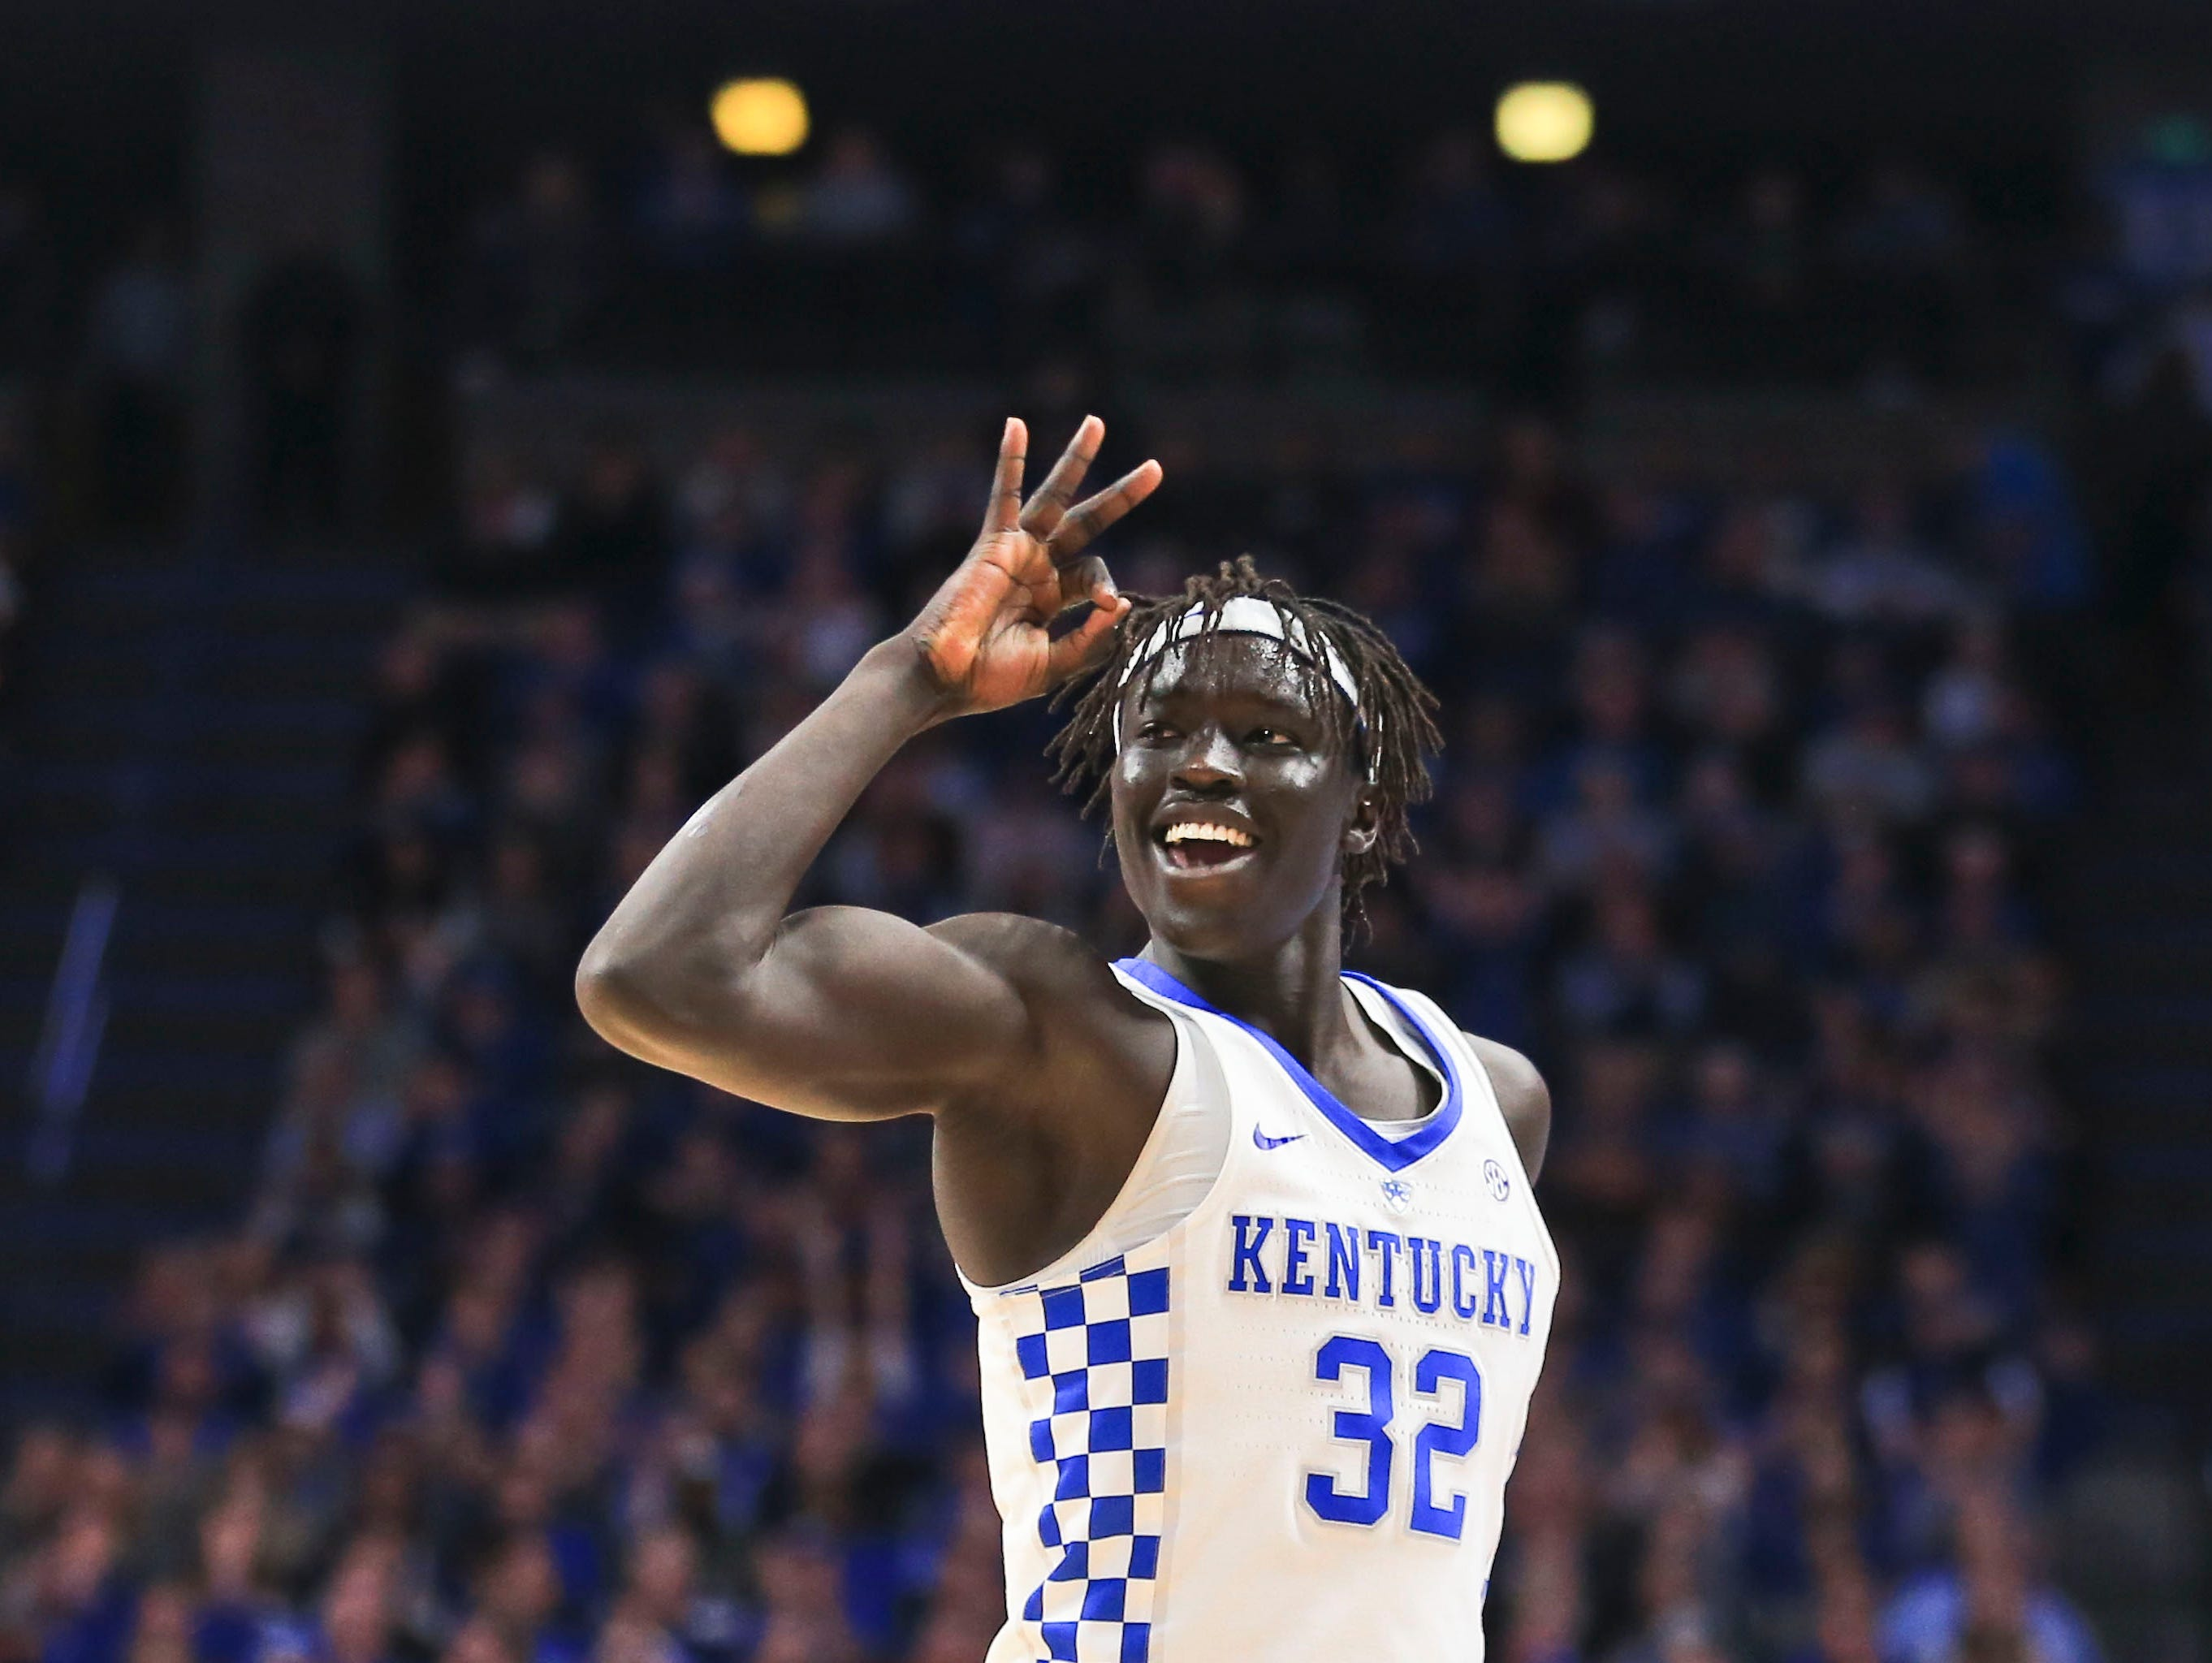 How To Watch Uk Basketball Play Etsu Game Time Tv: How To Watch Kentucky Basketball Vs. UGA: Game Time, TV